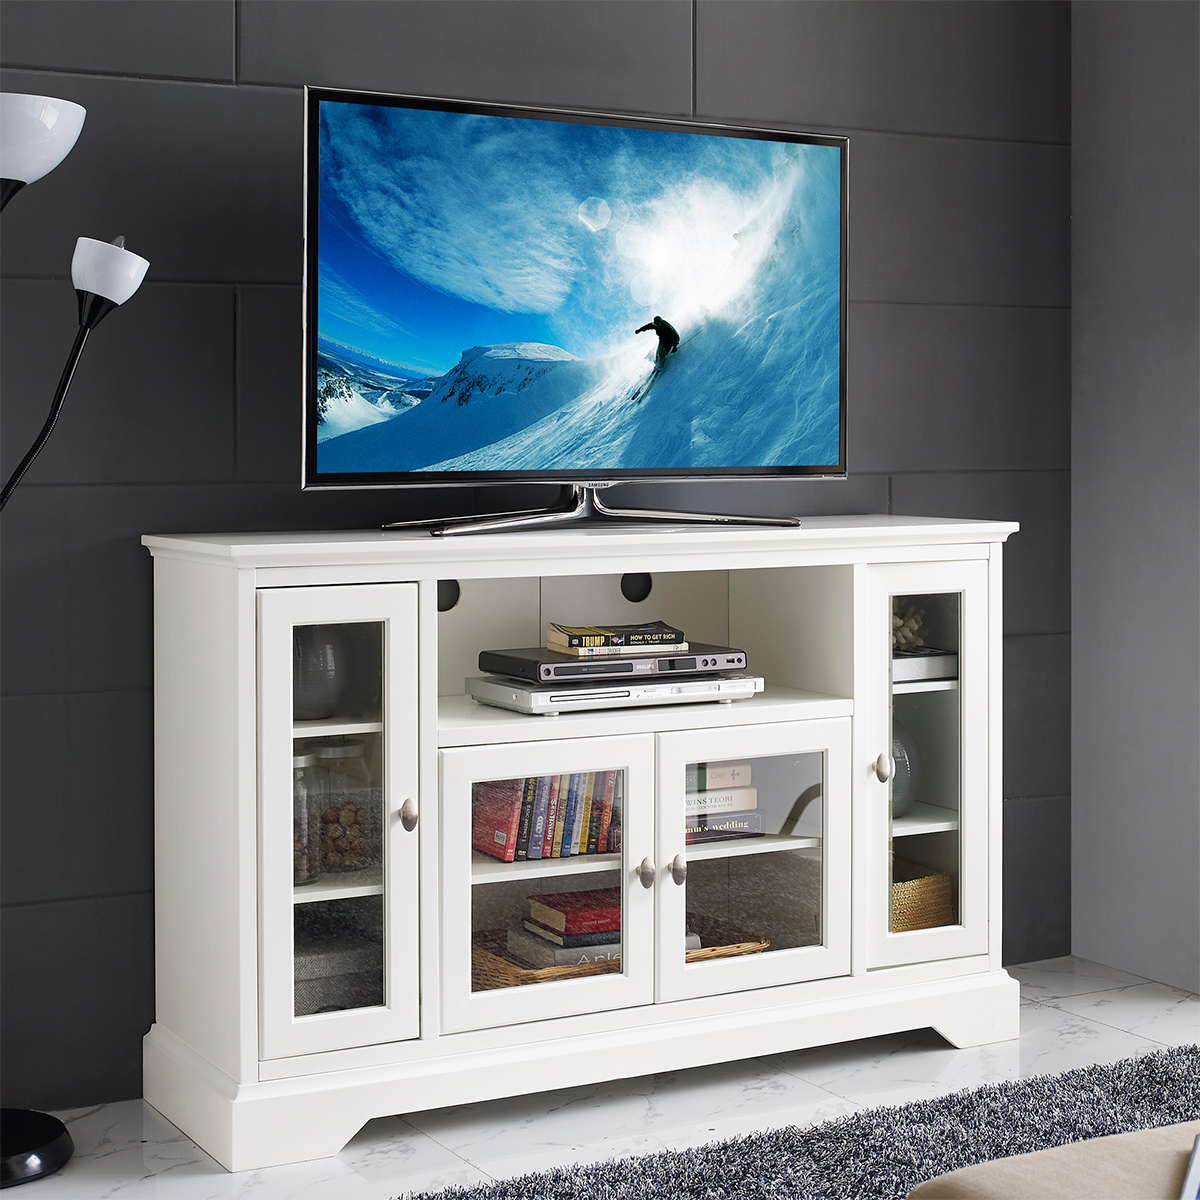 Walker Edison W52c32wh 52 Highboy Style Wood Tv Stand In White W